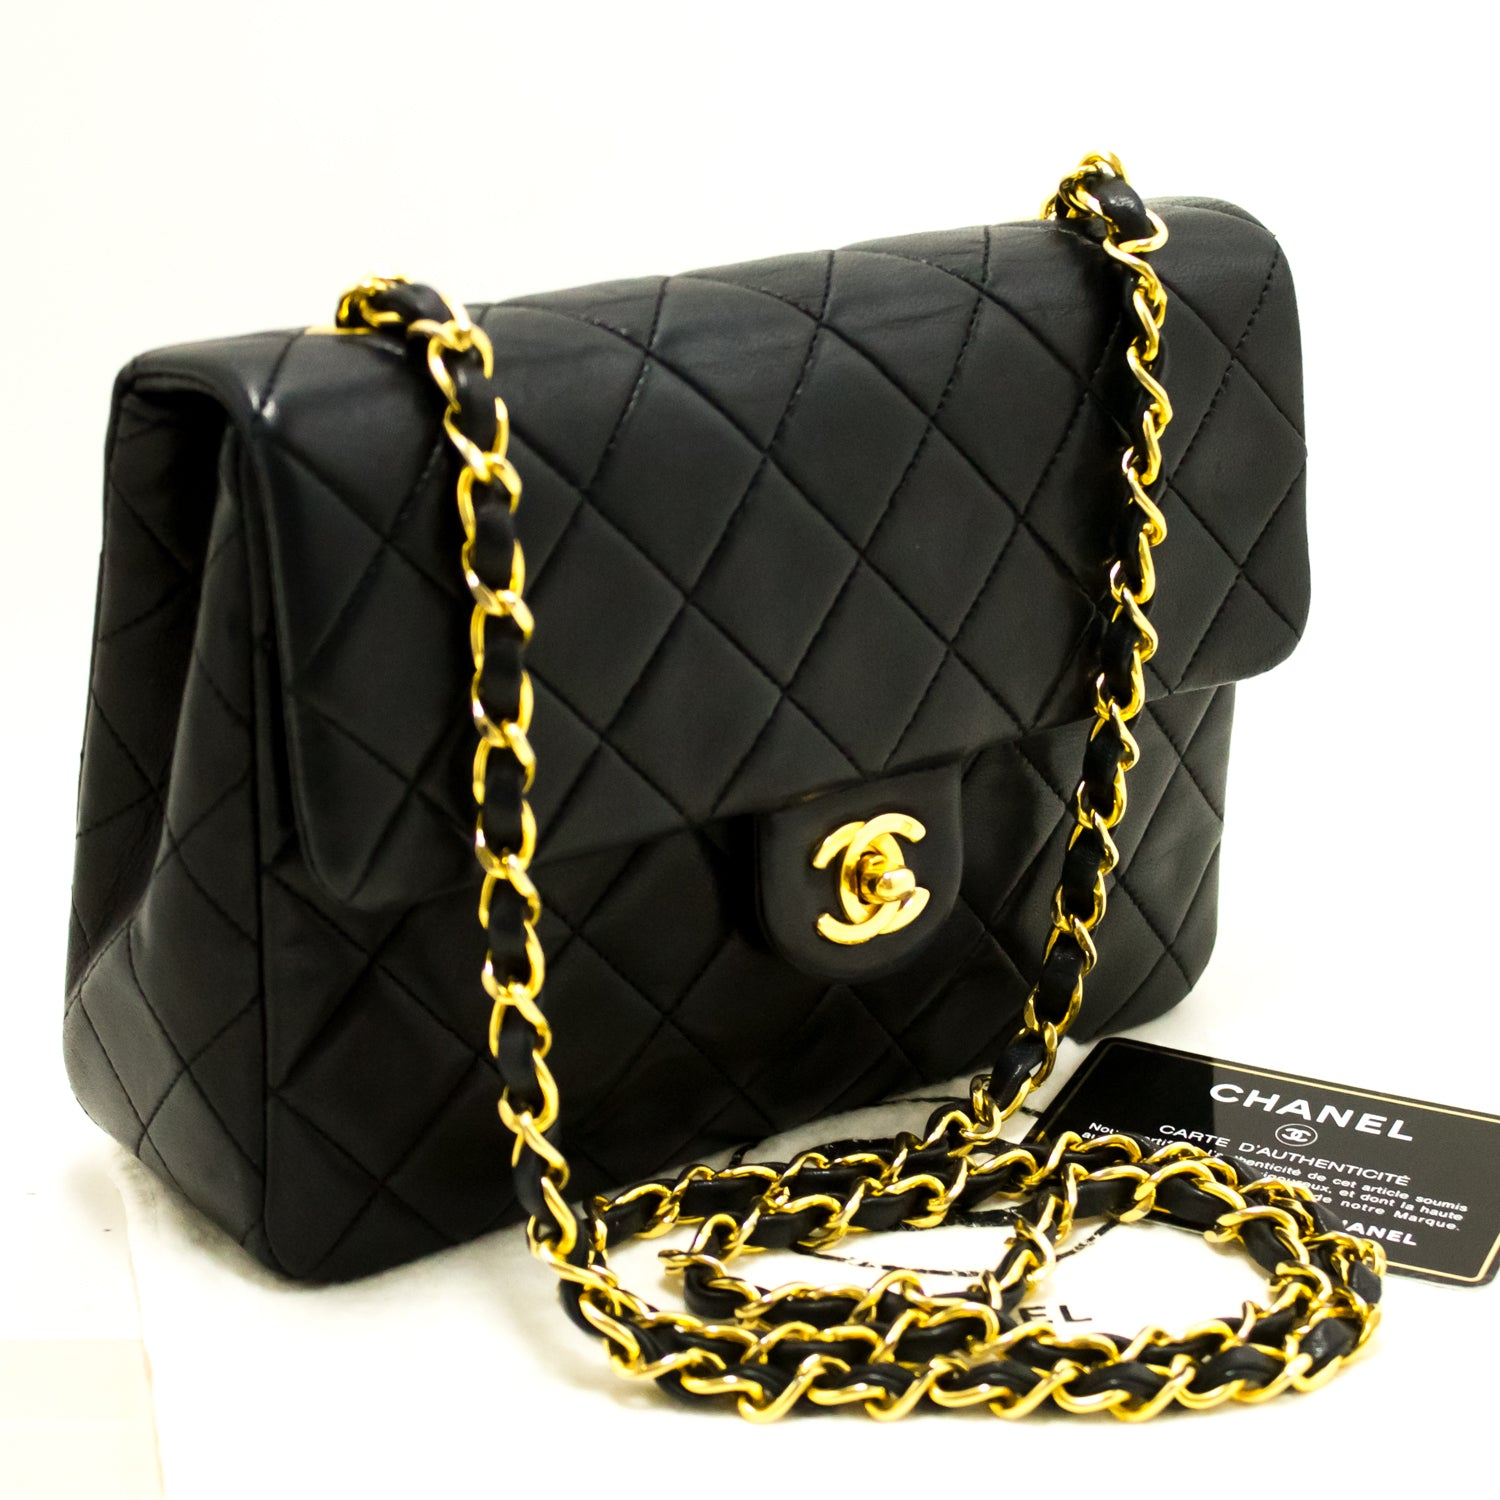 ... CHANEL Classic Mini Flap Chain Shoulder Bag Quilted Square Black n63 ... 0eb5191c69e8a